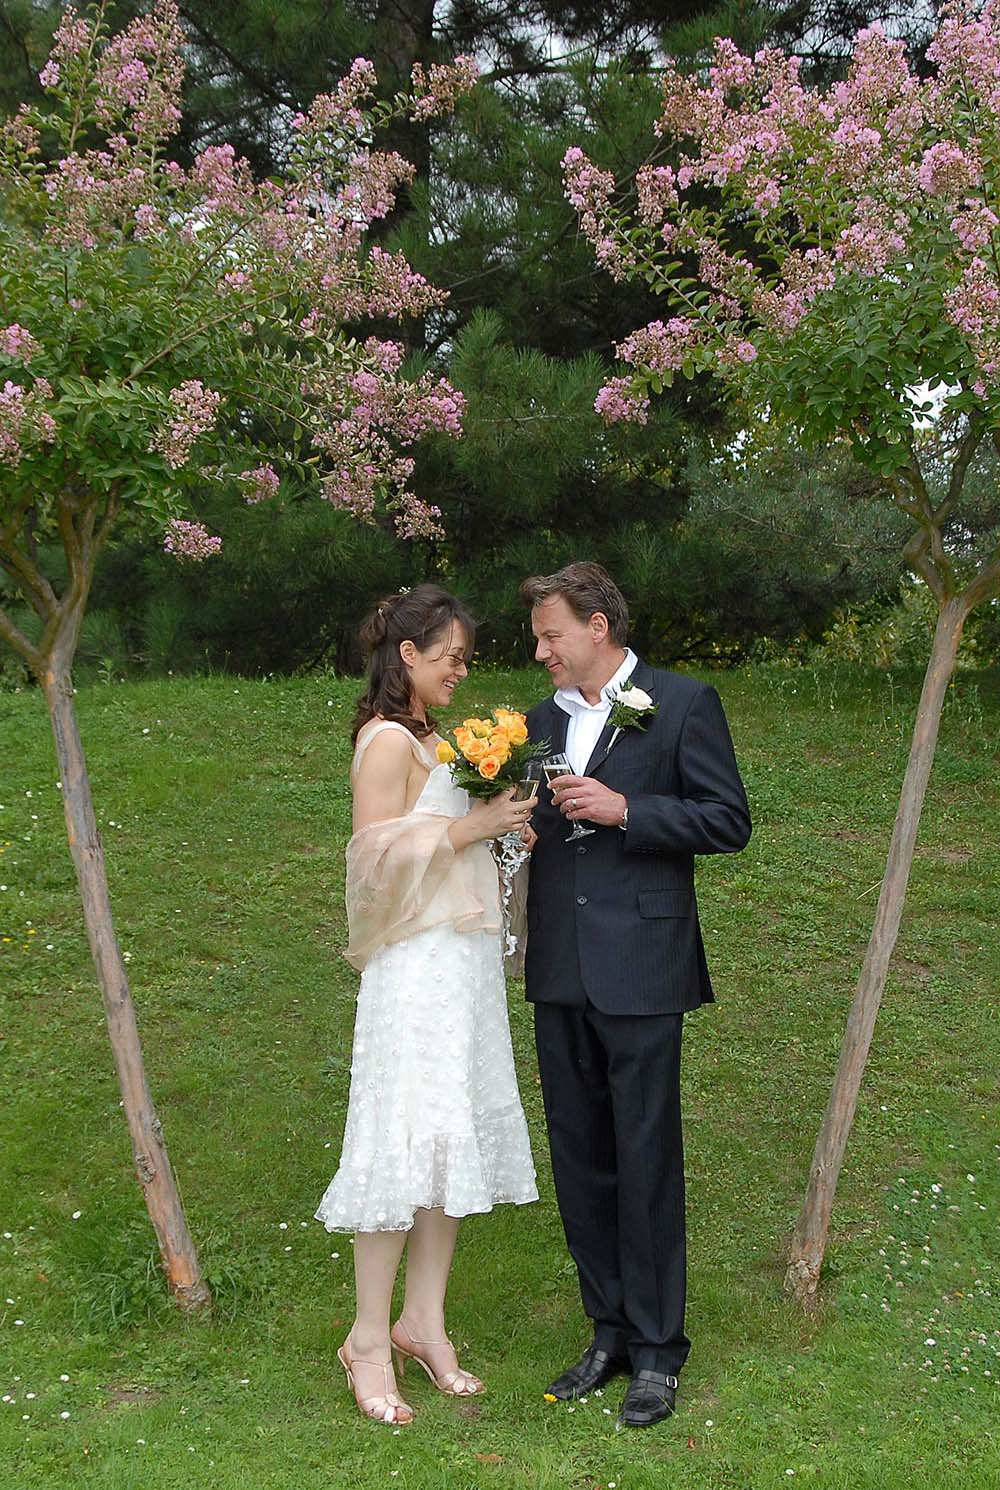 Married couple holding flowers and champagne, Parc Floral, Paris, France